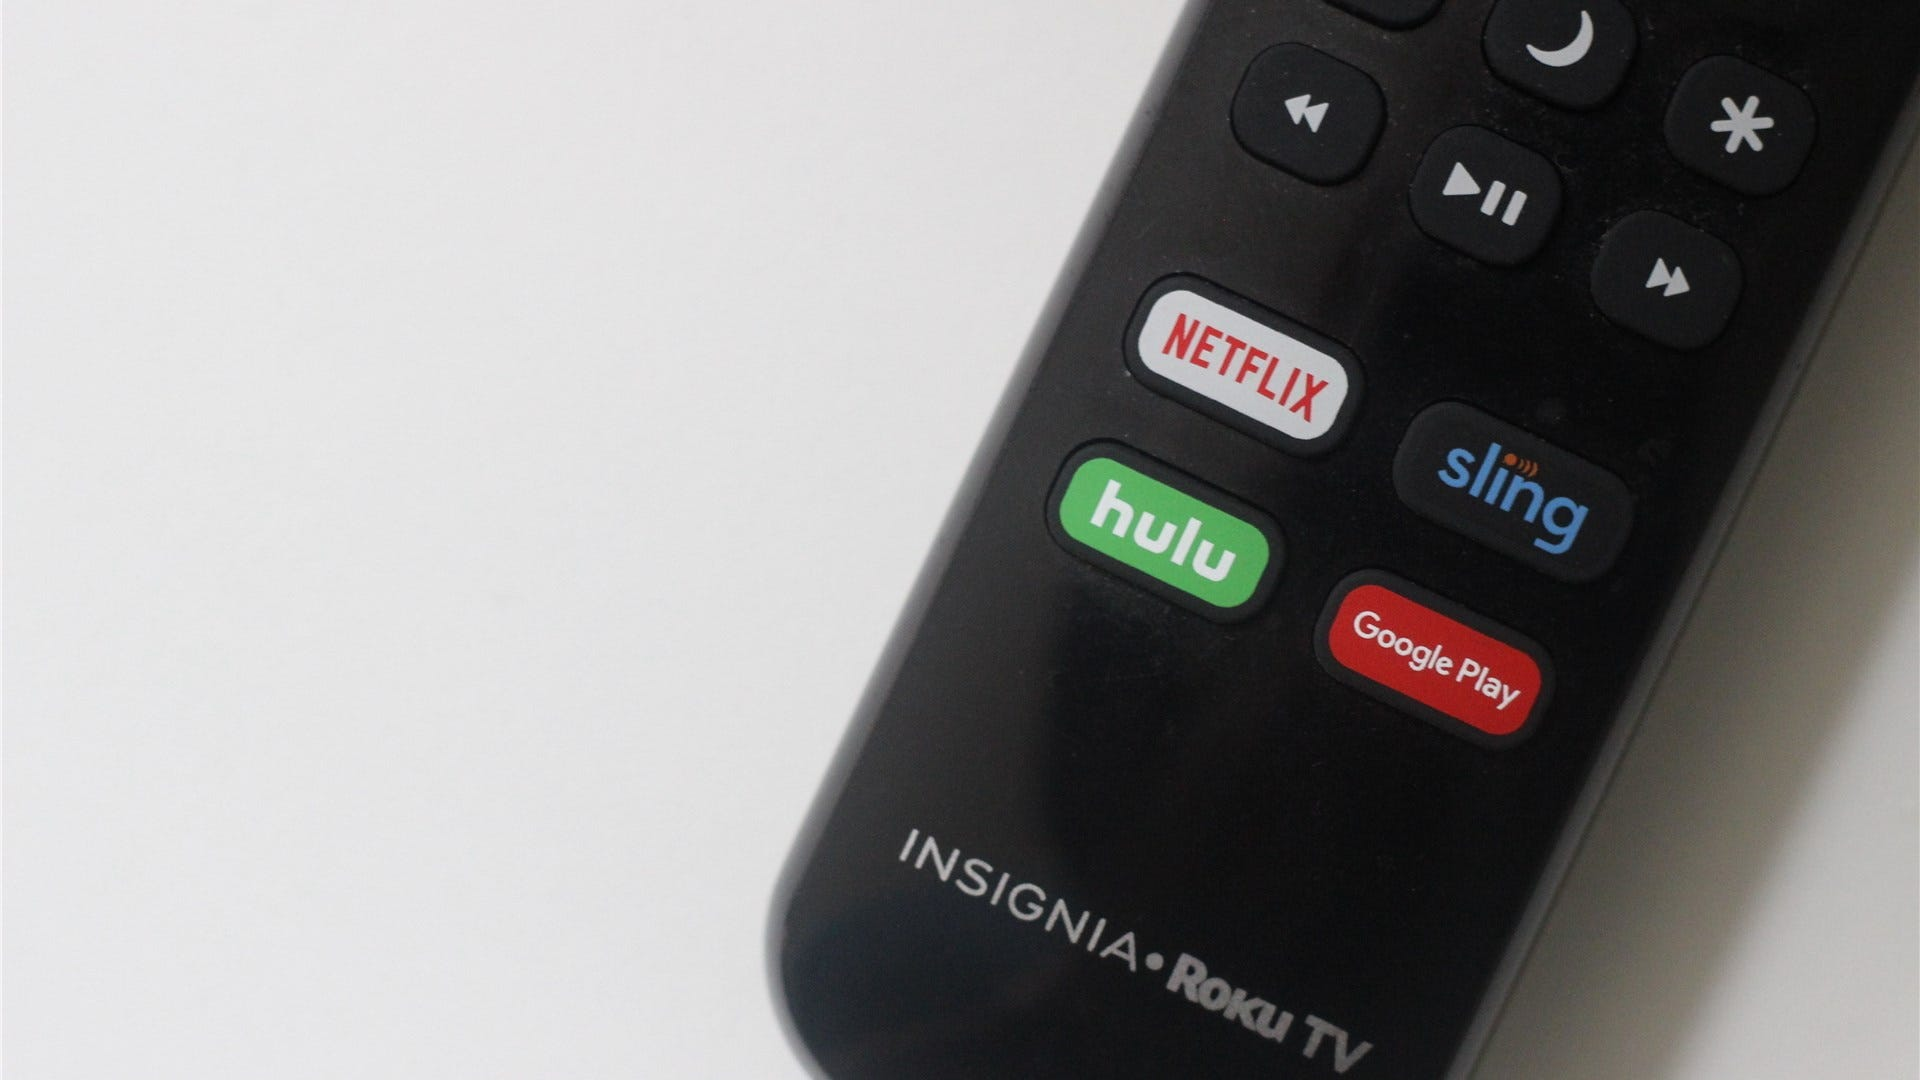 A picture of a Roku remote with a Google Play button